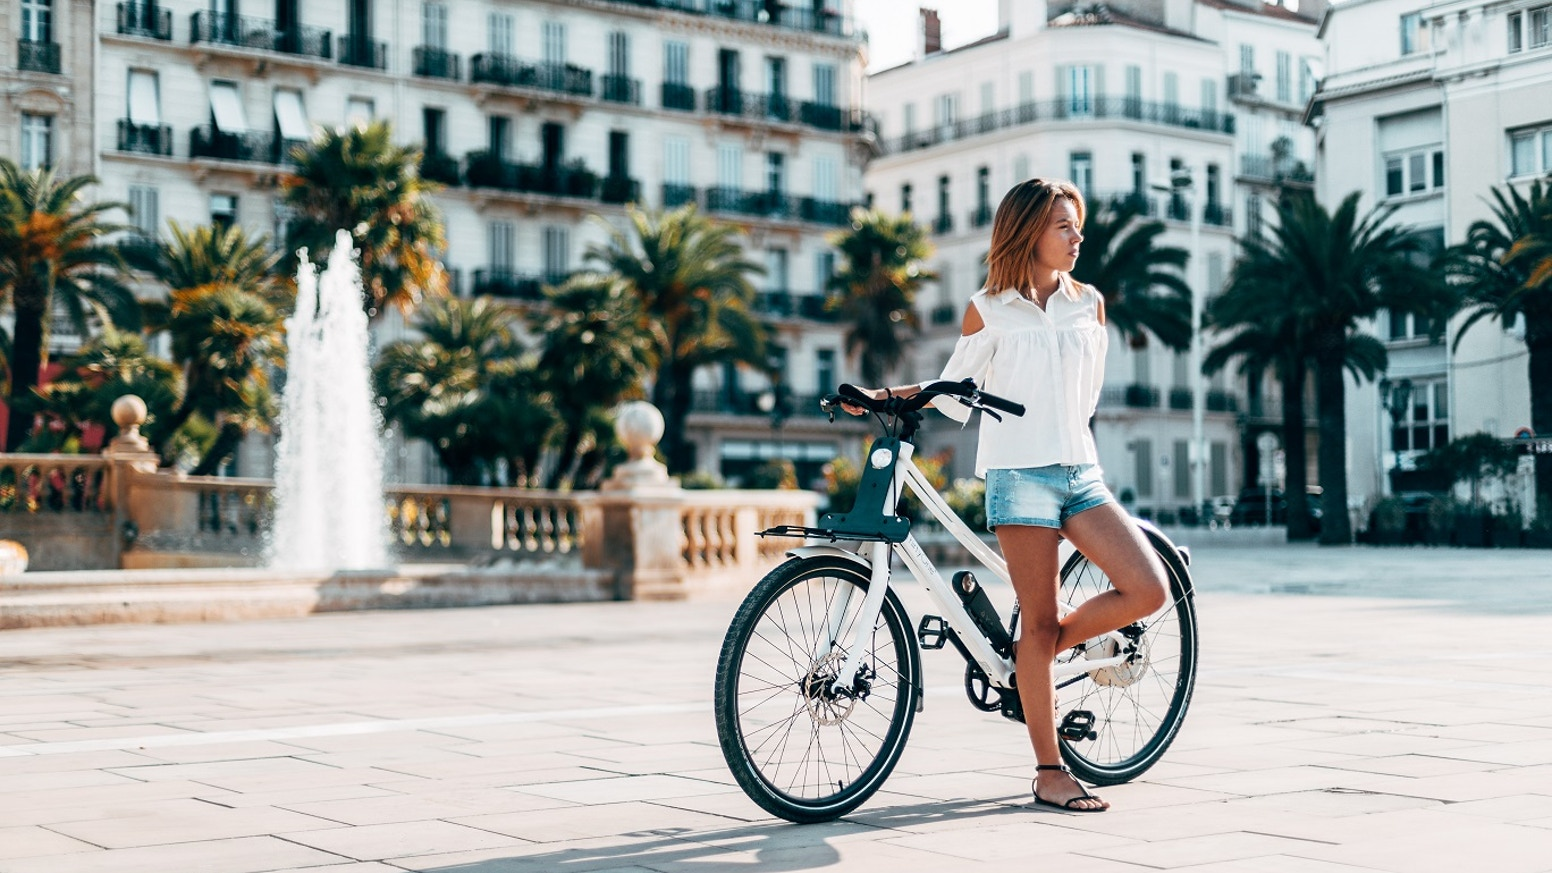 Le premier vélo hybrid de France qui se recharge au freinage / the first hybrid bike in France with self-charging,